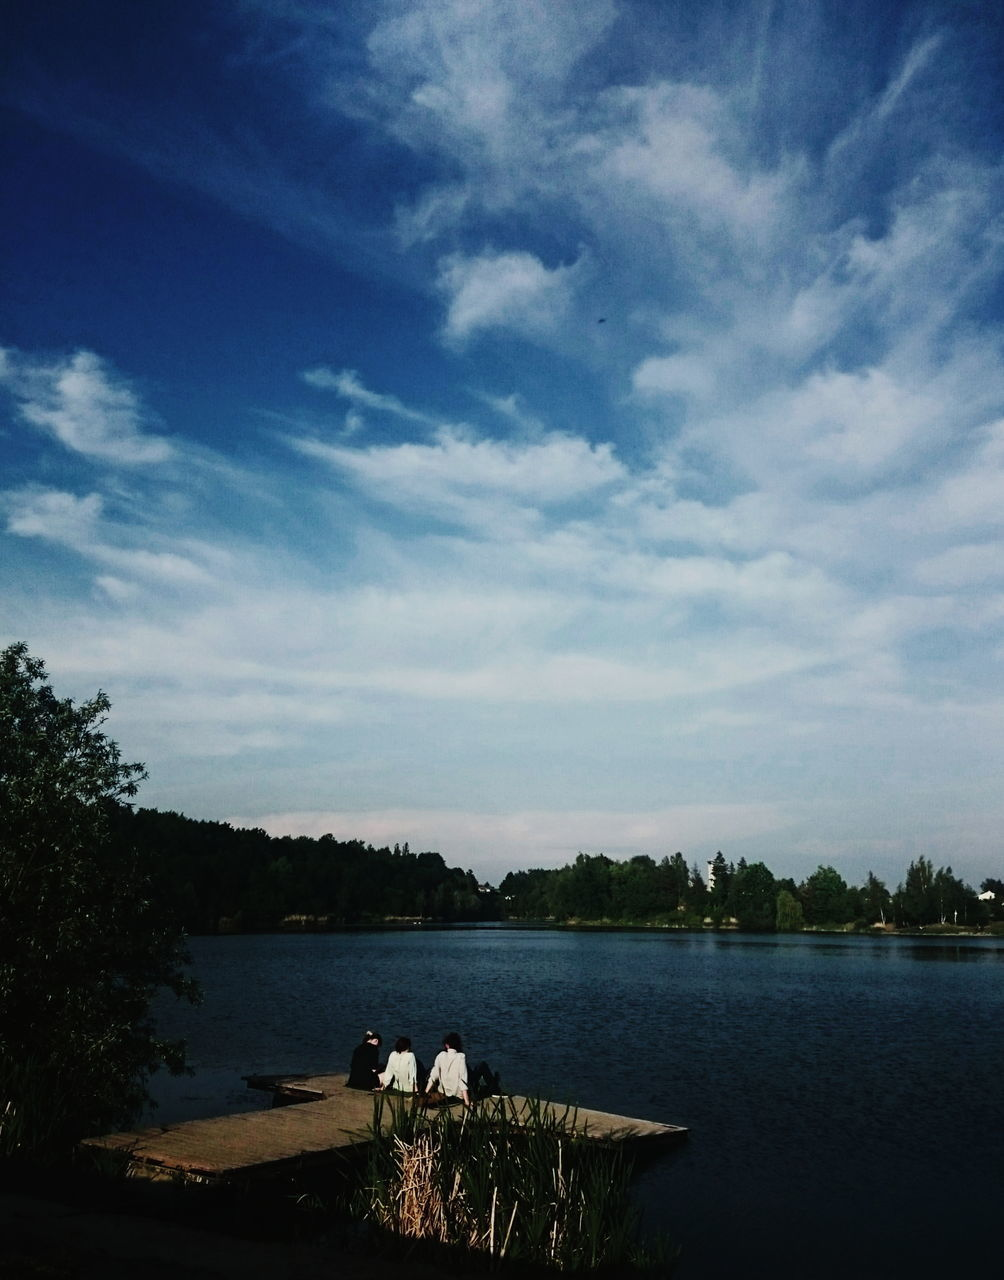 sky, lake, water, tree, nature, tranquility, outdoors, beauty in nature, landscape, togetherness, scenics, day, no people